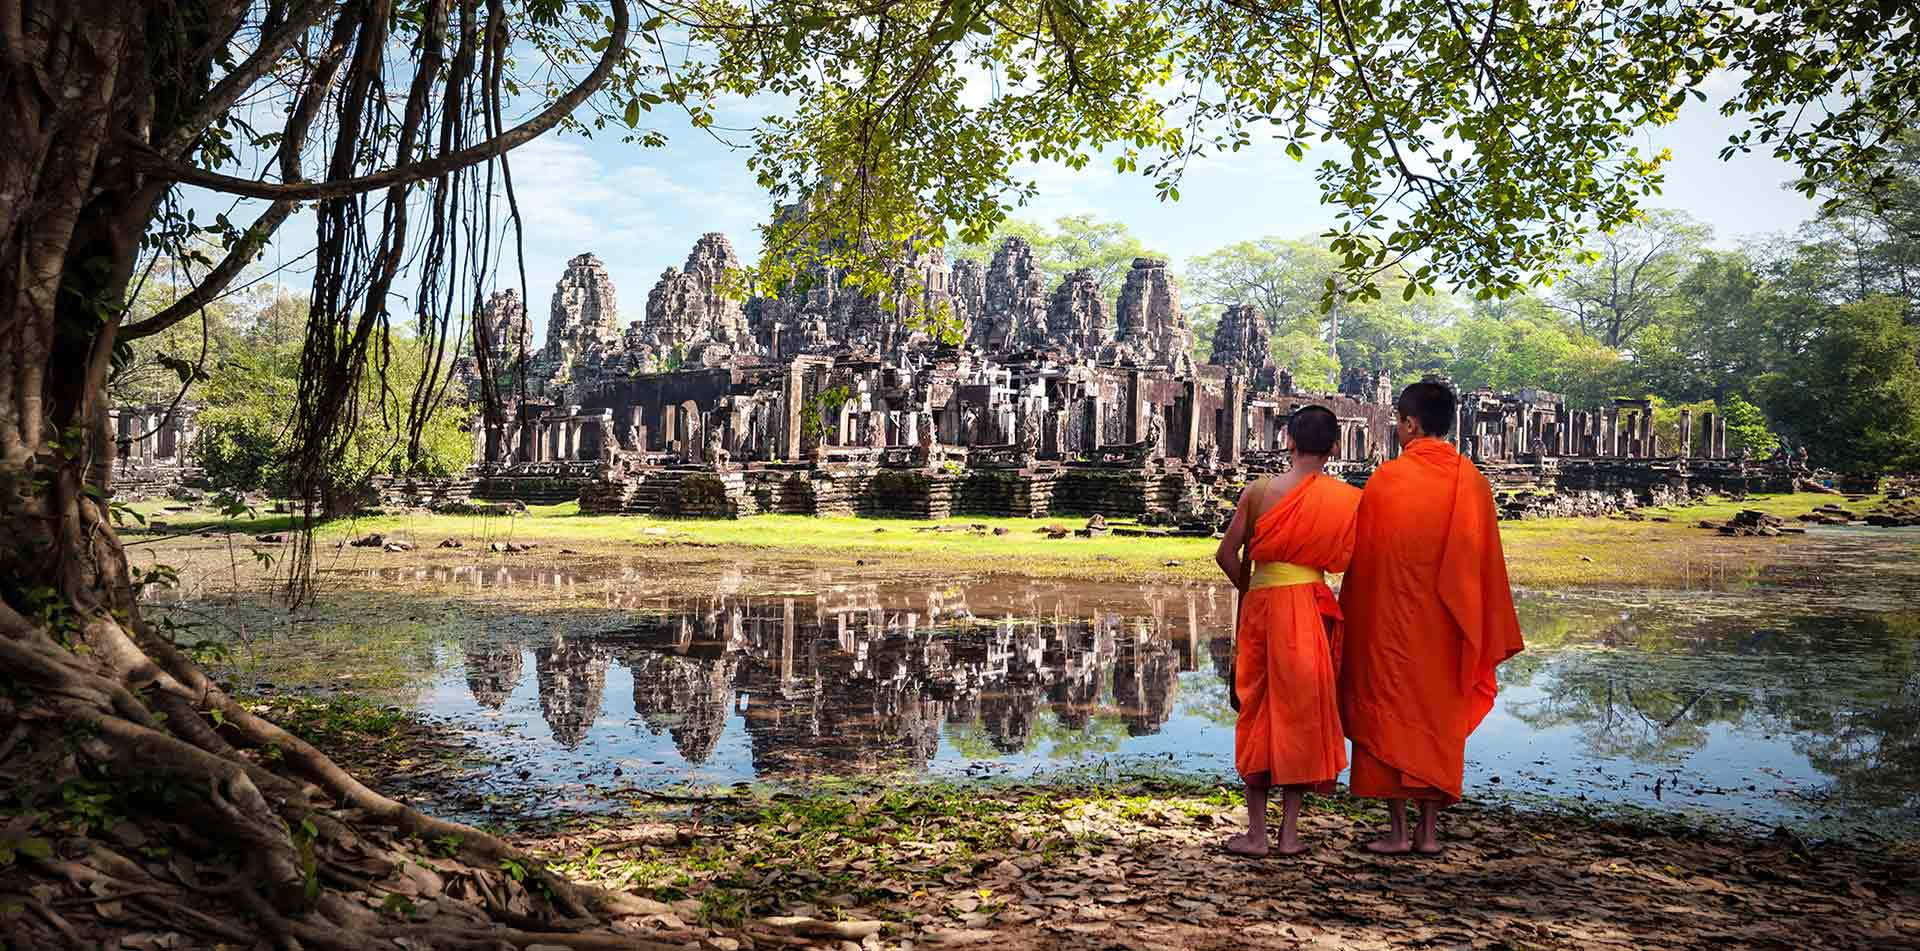 Bhuddist Monks at Angkor Wat, Cambodia